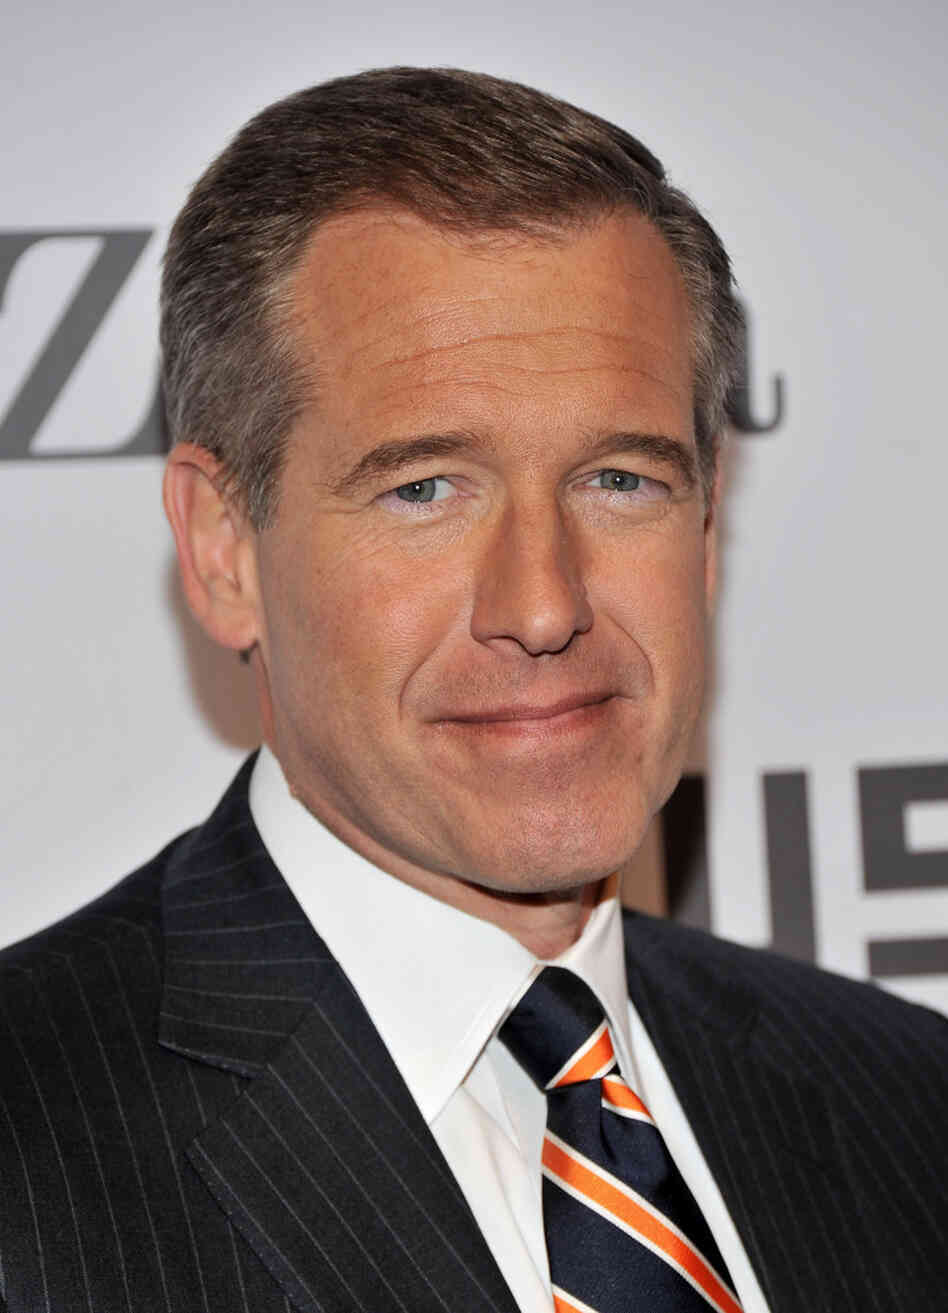 Brian Williams will be the host of a new newsmagazine show on NBC.